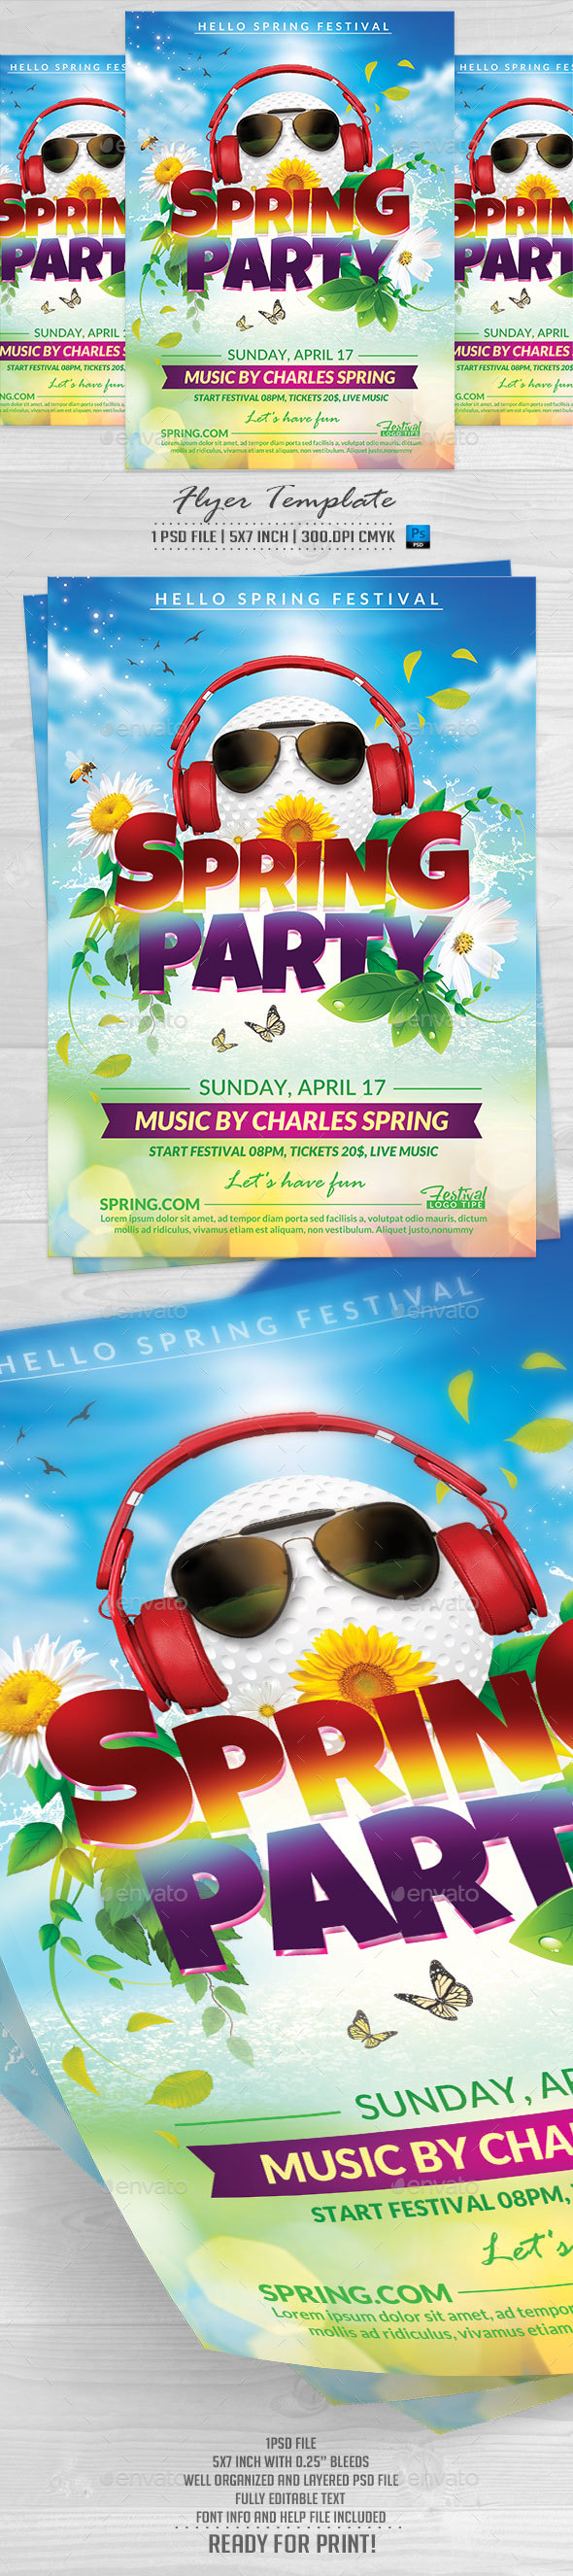 Spring Party Flyer Template - Events Flyers